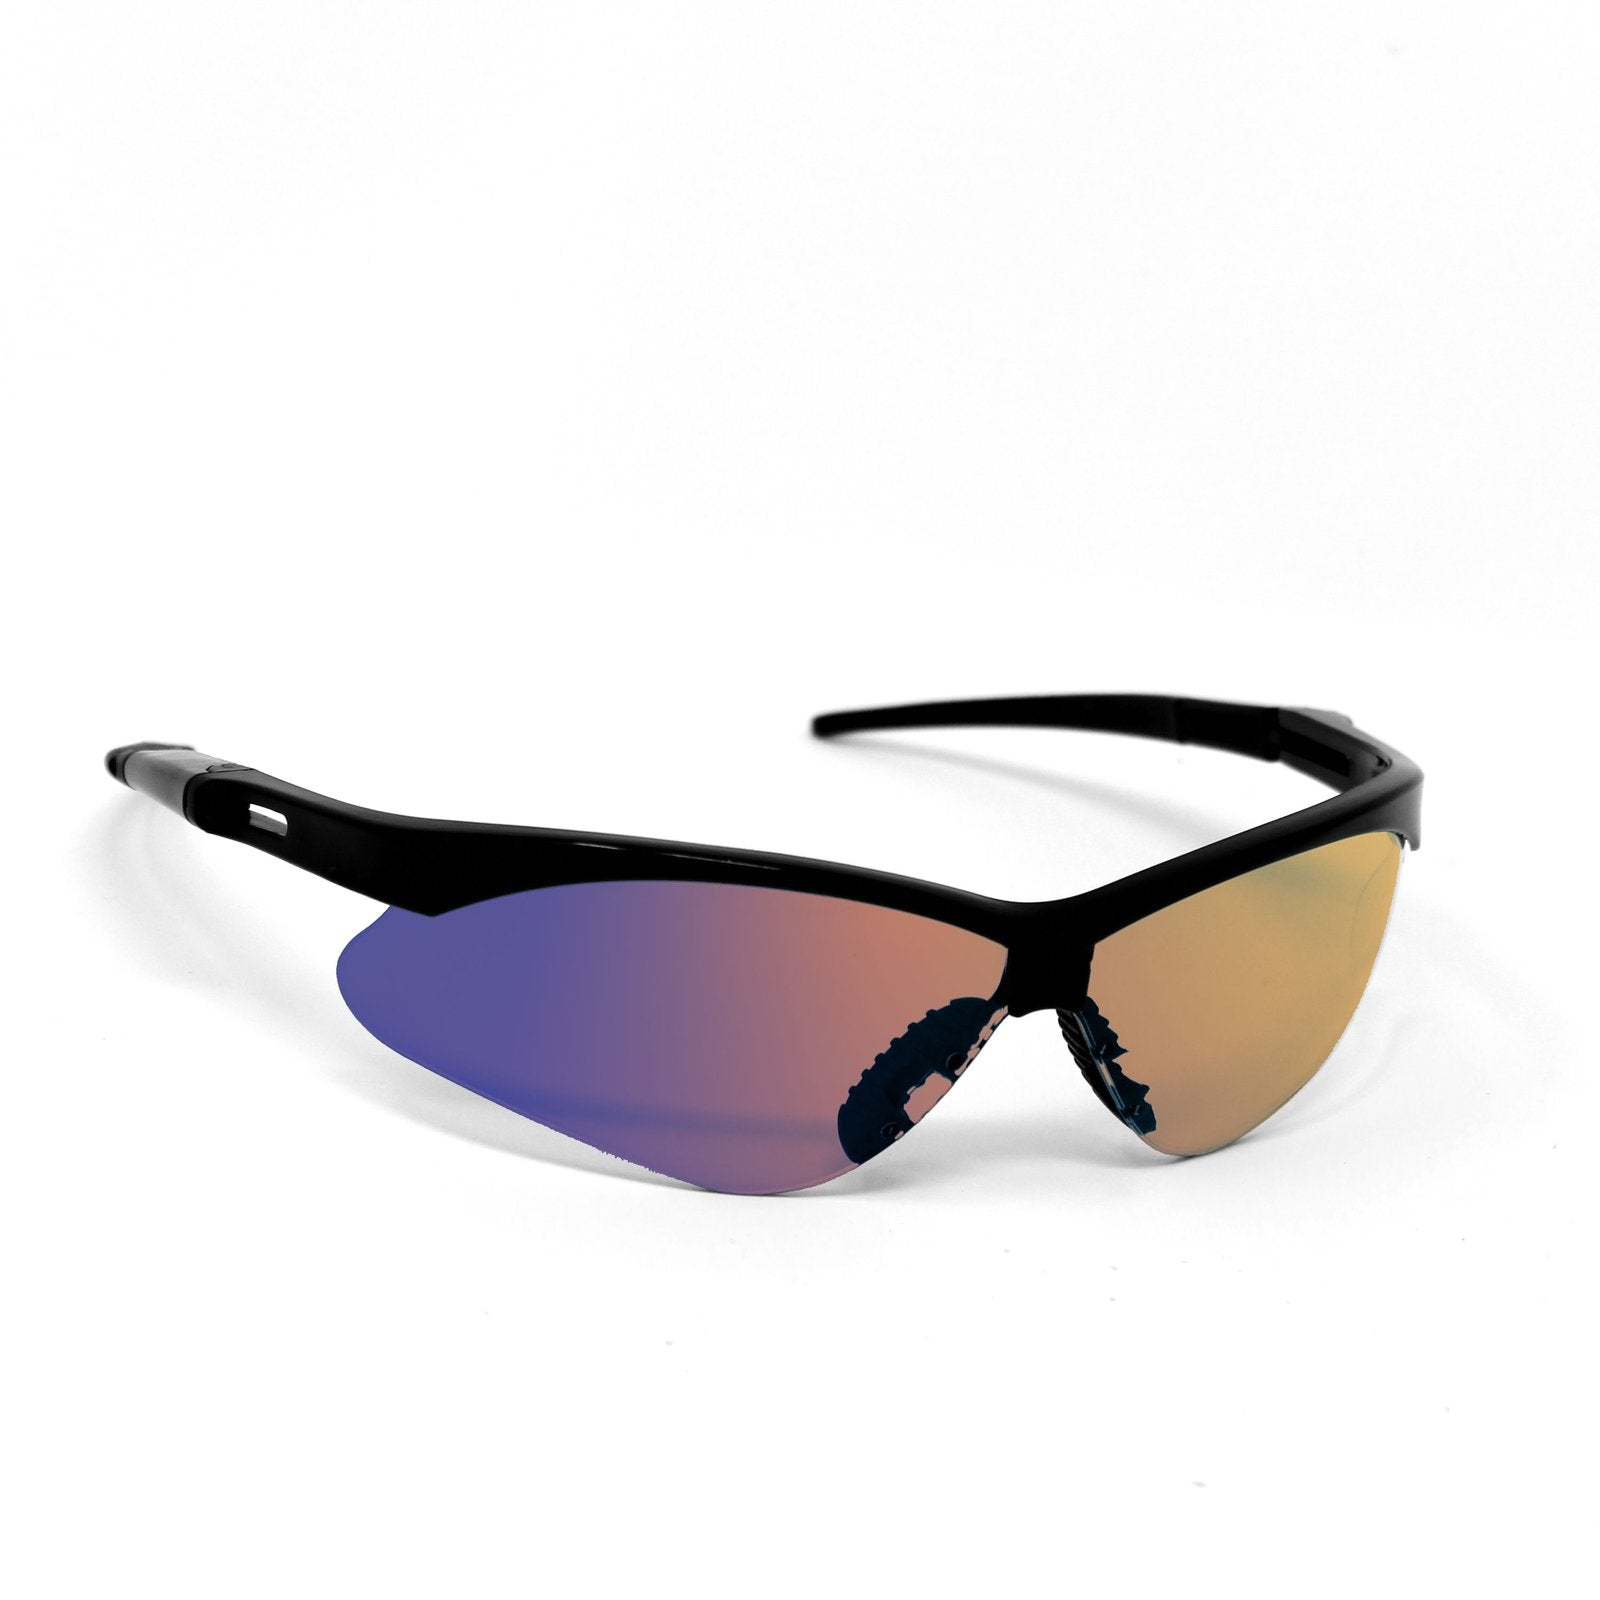 OPTIC MAX Blue Mirror Lens With Black Frame